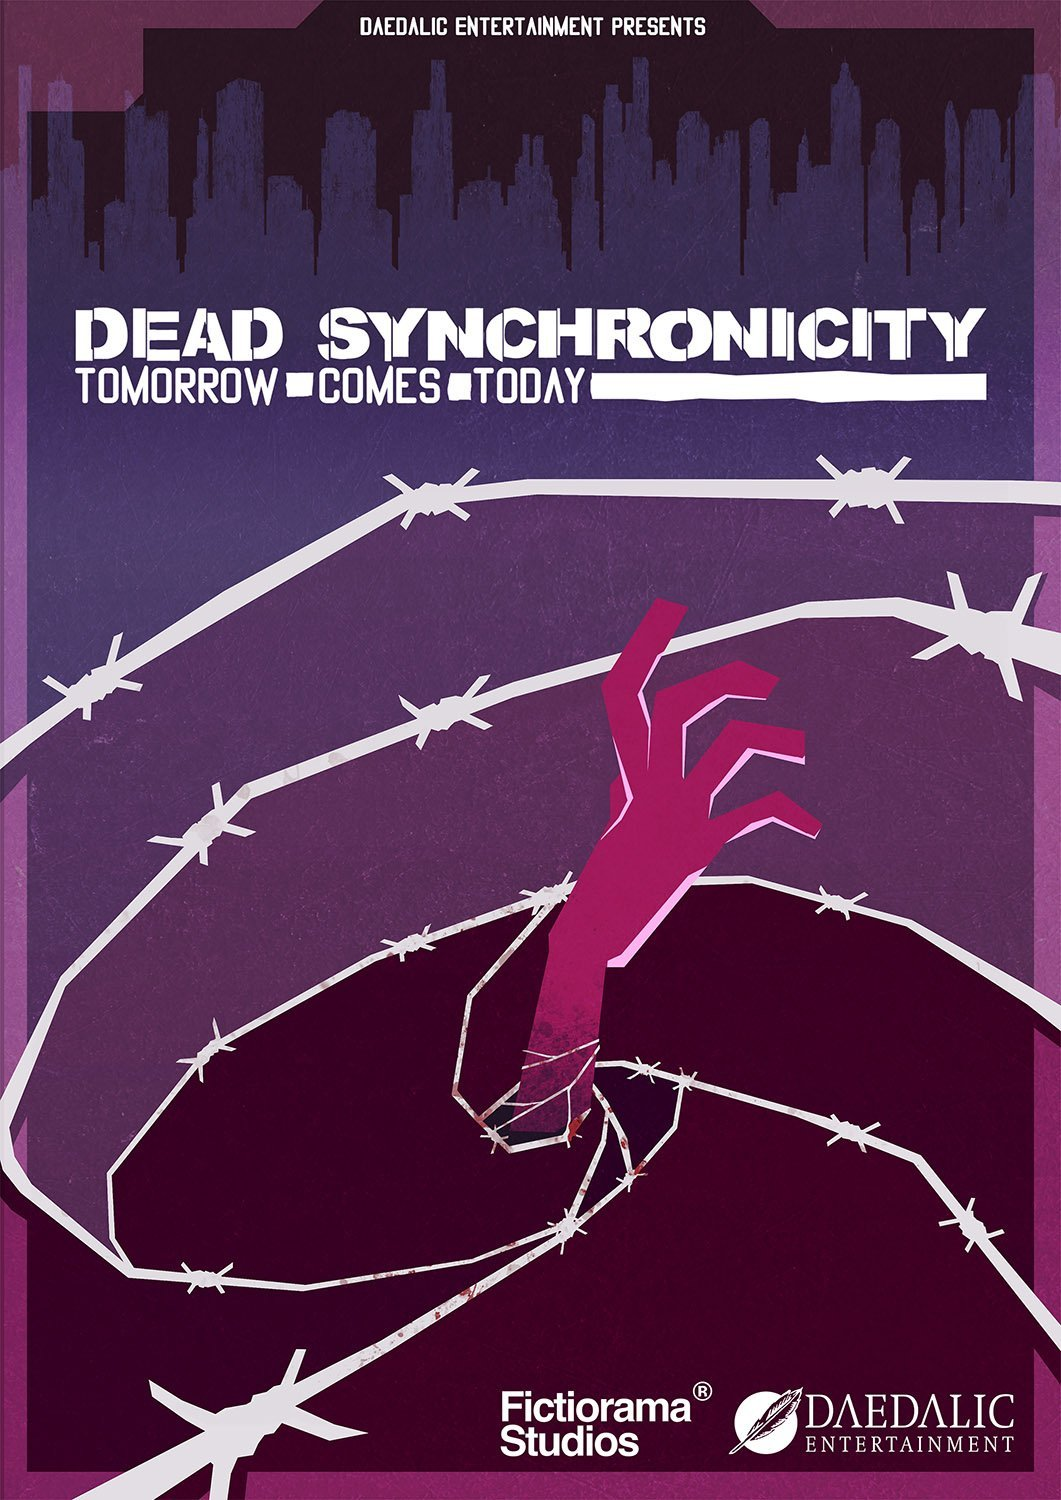 Dead Synchronicity: Tomorrow Comes Today v.1.0.10 [GOG] (2015) (2015)